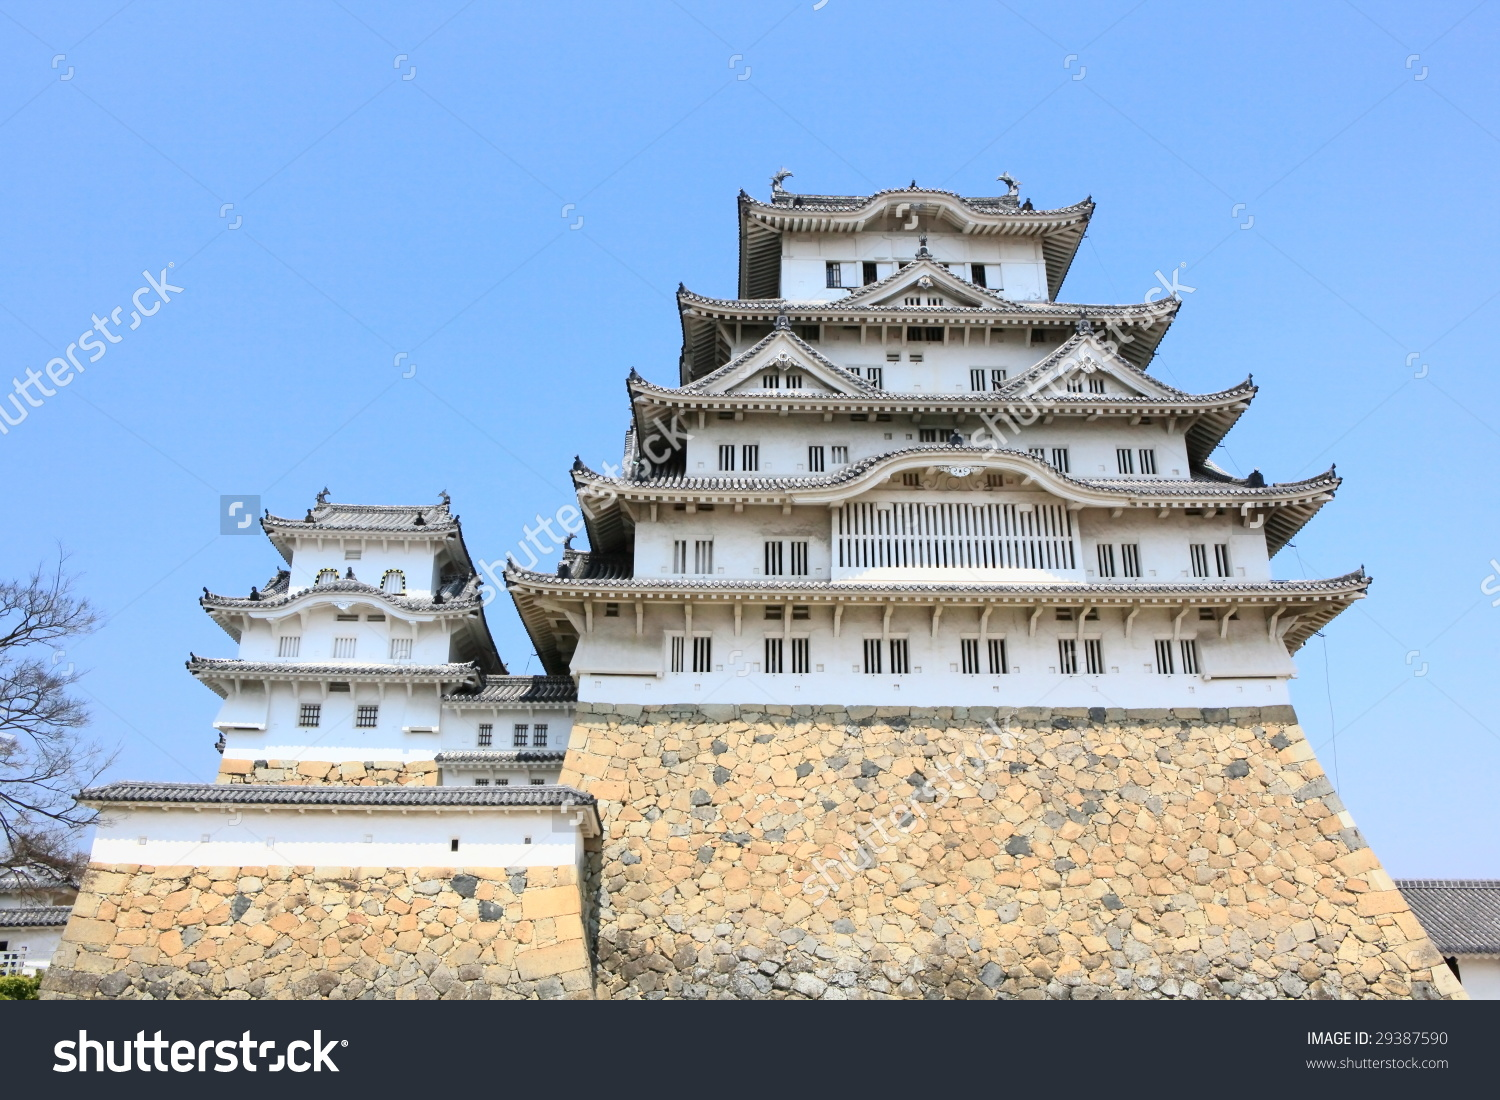 Front View Of Himeji Castle Stock Photo 29387590 : Shutterstock.